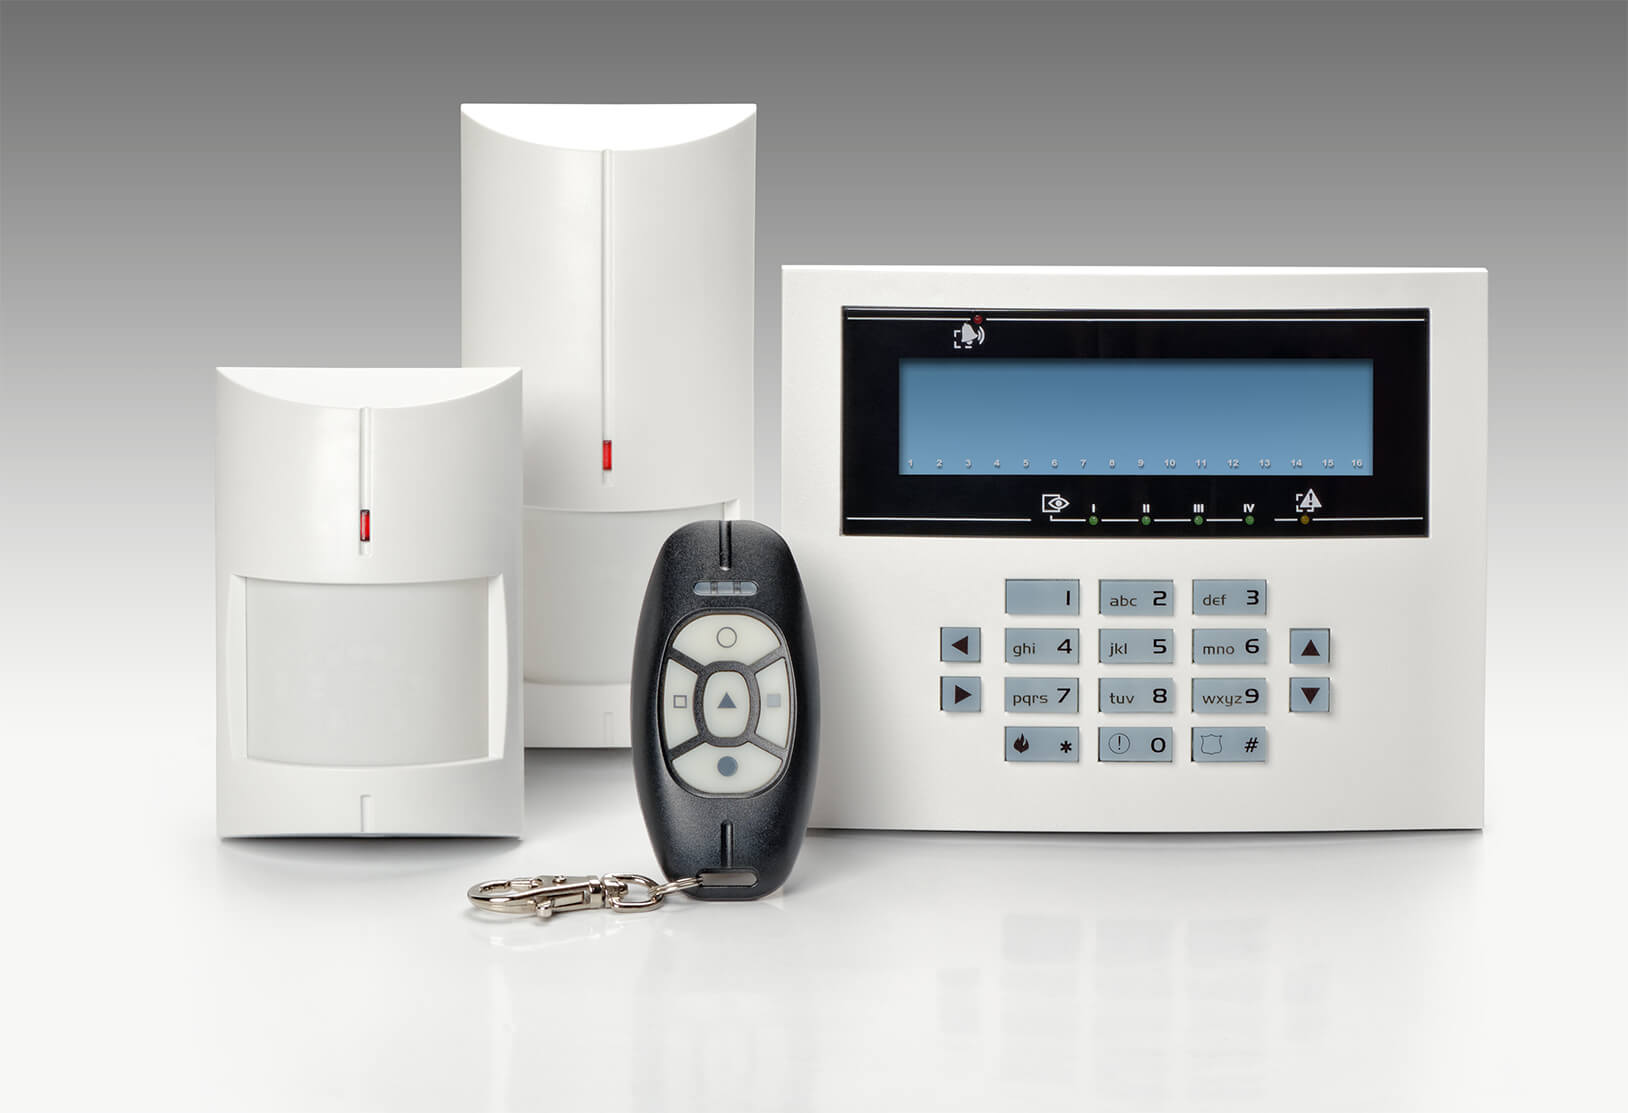 home SSAIB Approved {alarms} In Battersea SW12 - Local Battersea SW12 security company.Call 02078872244 - Dedicated to Safety & Security.Trusted by 1000's in Battersea SW12